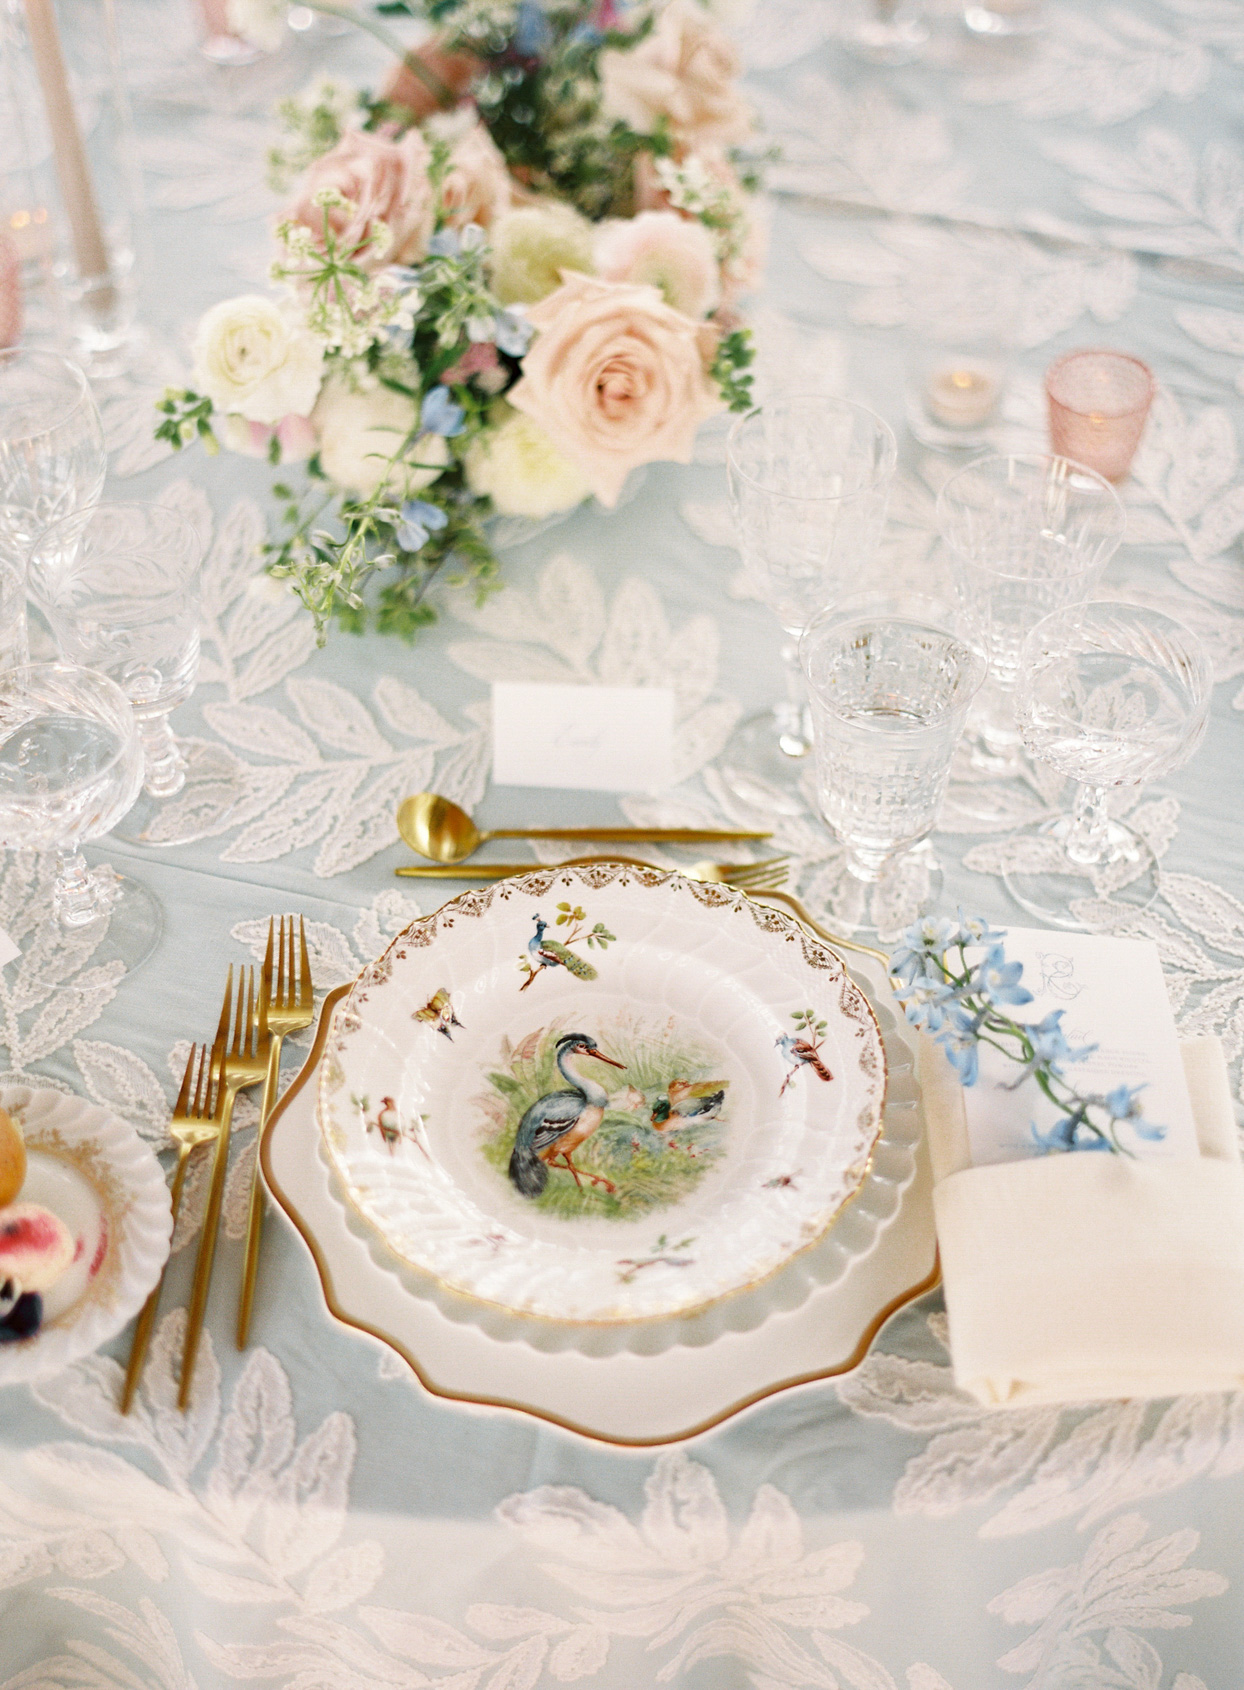 ornate place setting with bird design and golden utensils